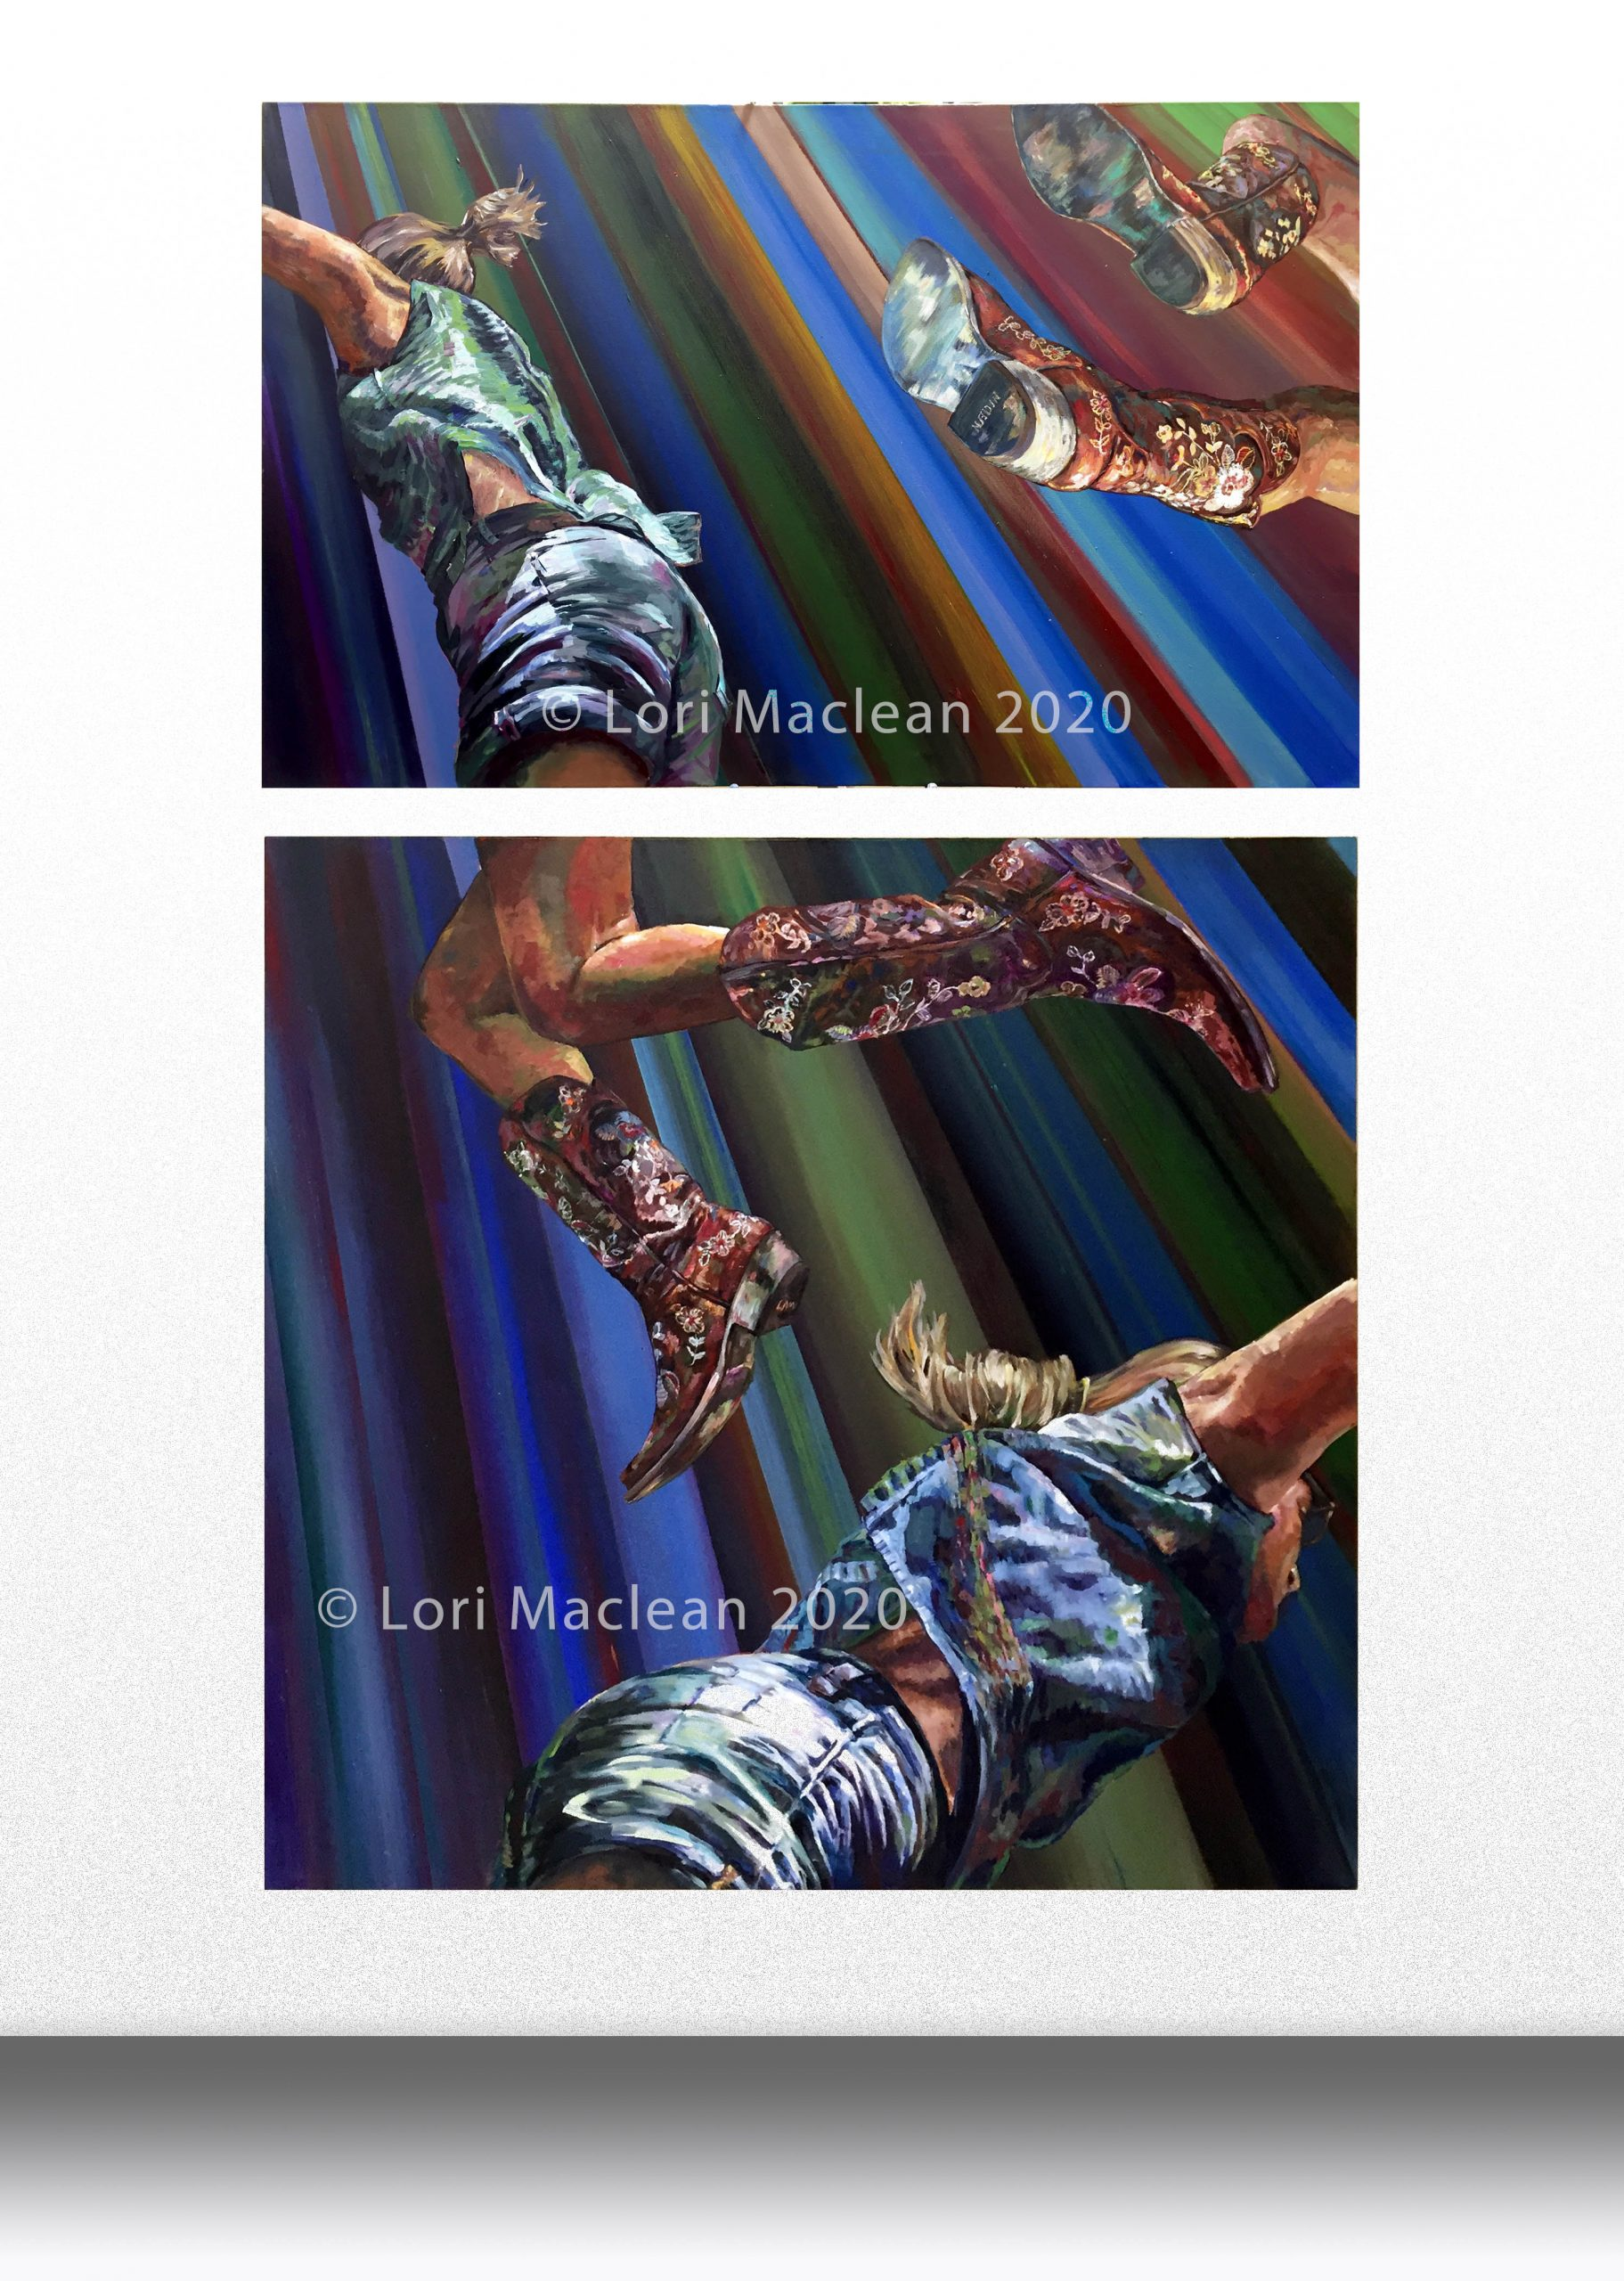 Acrylic on Canvas, fine art painting, figurative, abstract, jumping, action, modern, cowboy, boots, detailed